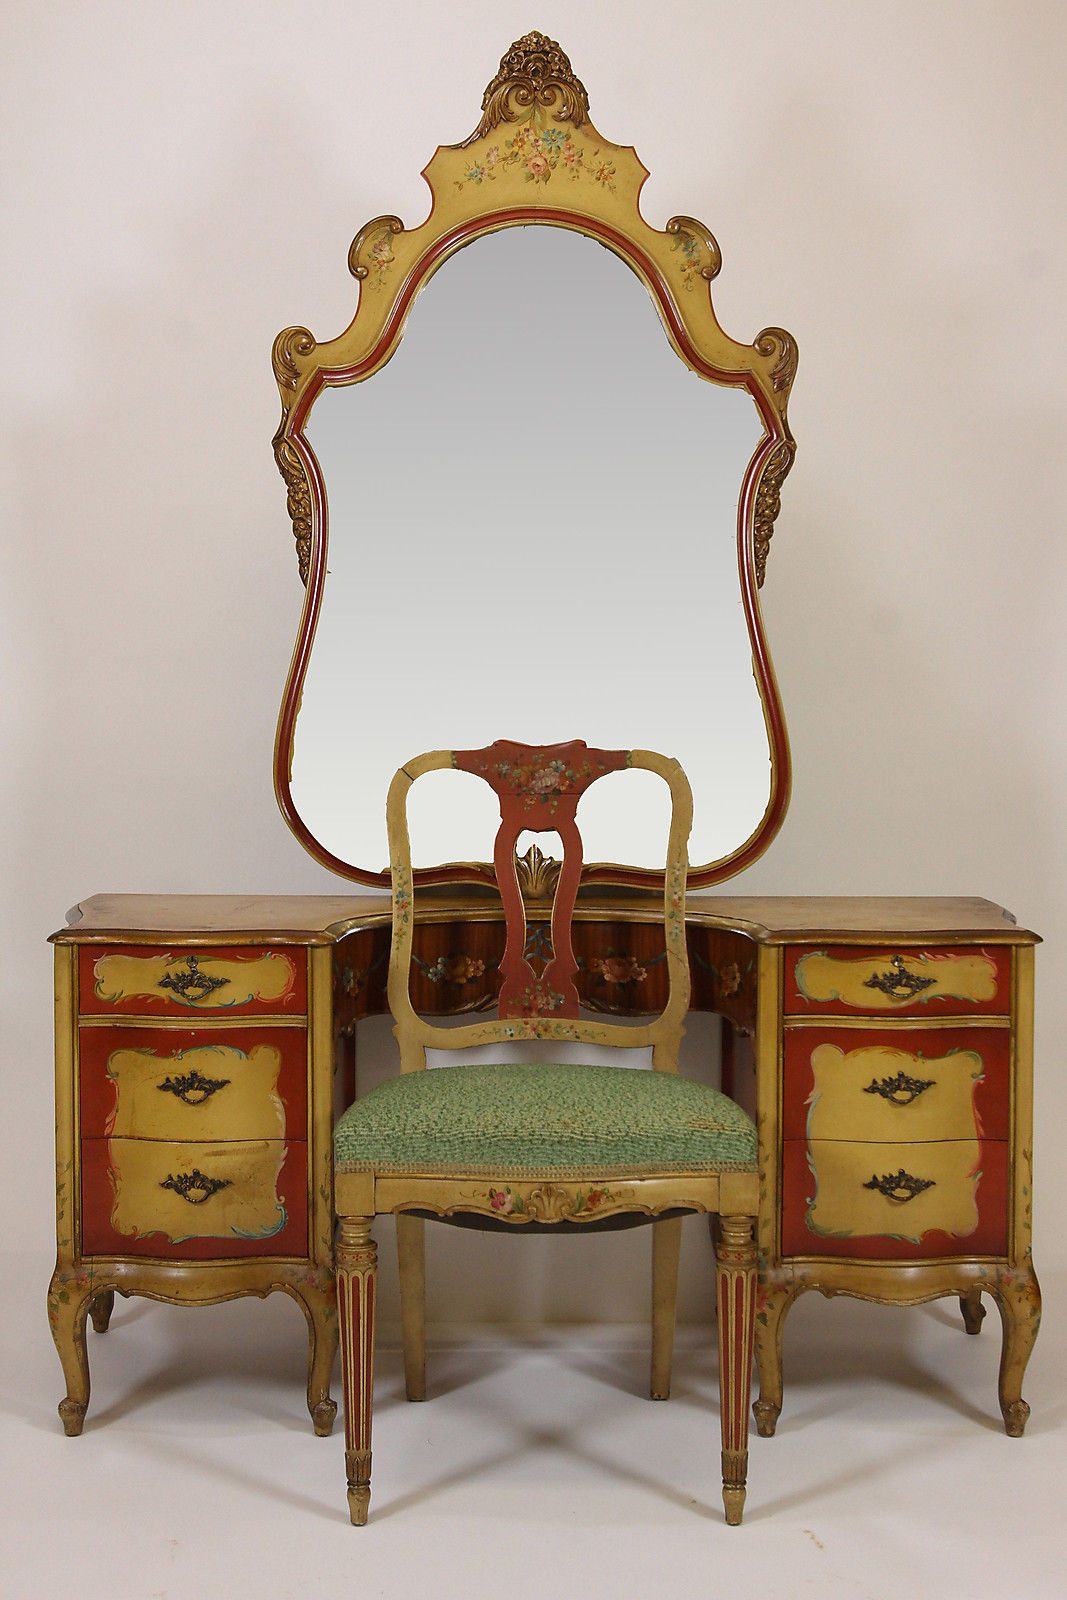 This Is A Gorgeous Piece Of Antique Furniture Made By The